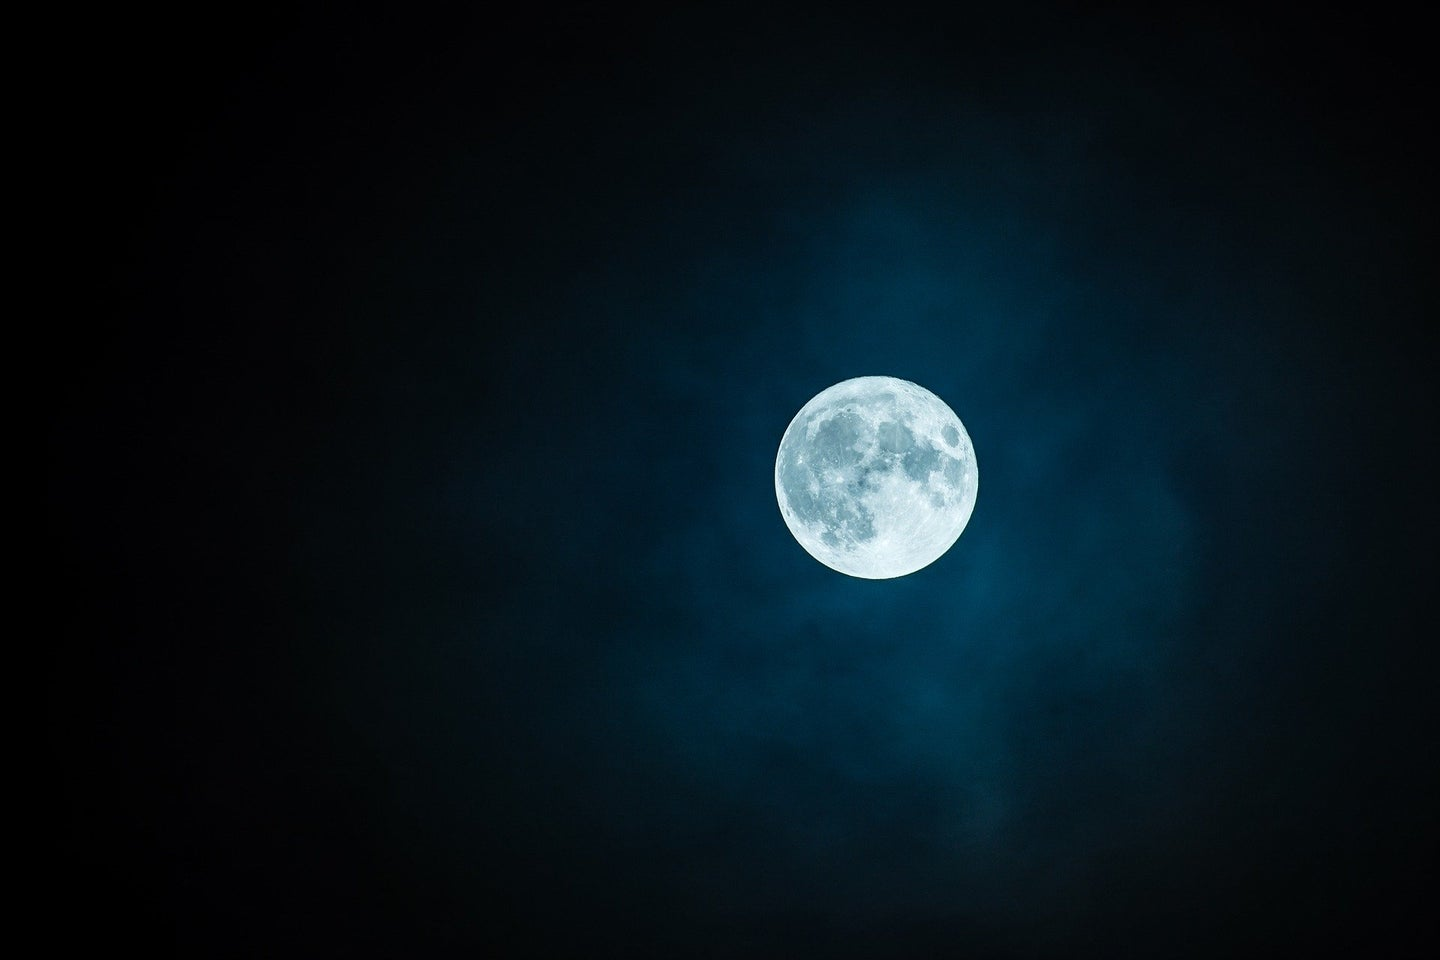 A full moon in the night sky with no stars.